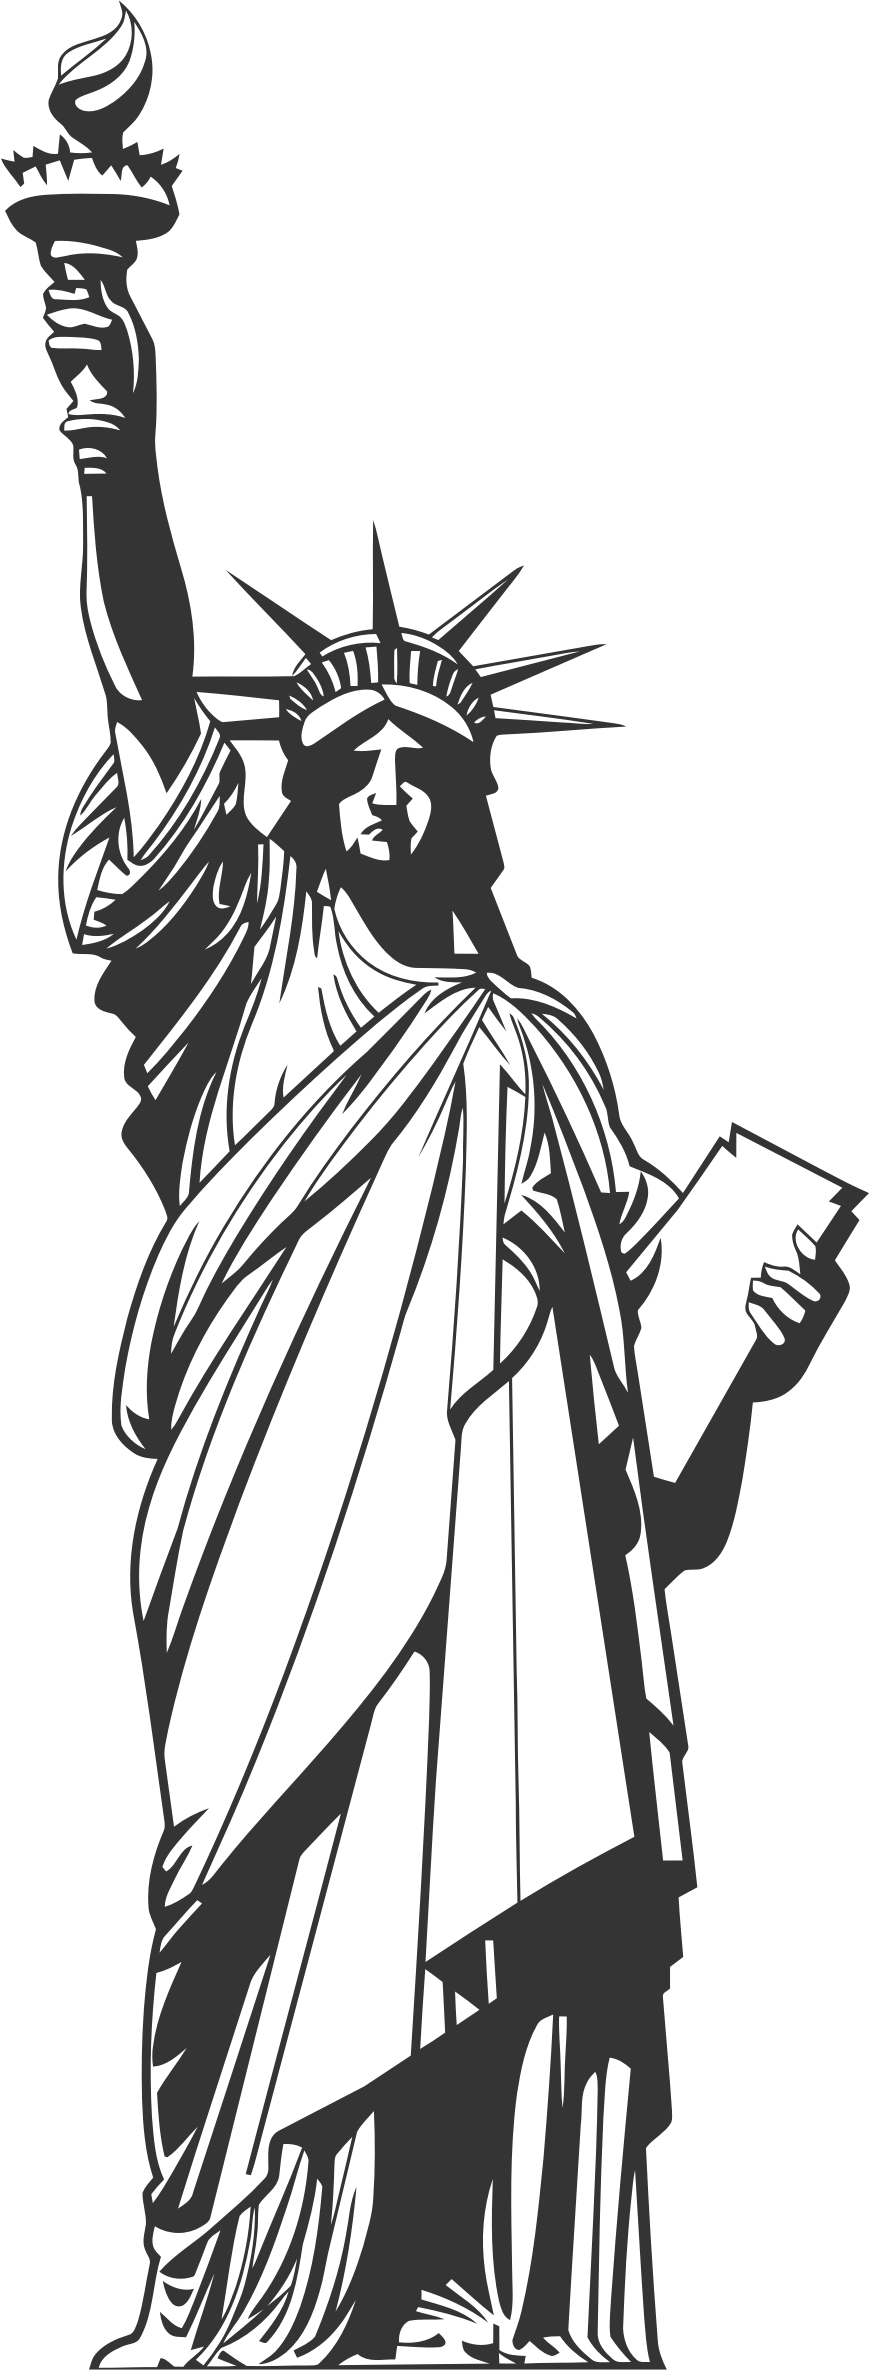 Statue of liberty crown clipart image free download 28+ Collection of Statue Of Liberty Line Drawing | High quality ... image free download